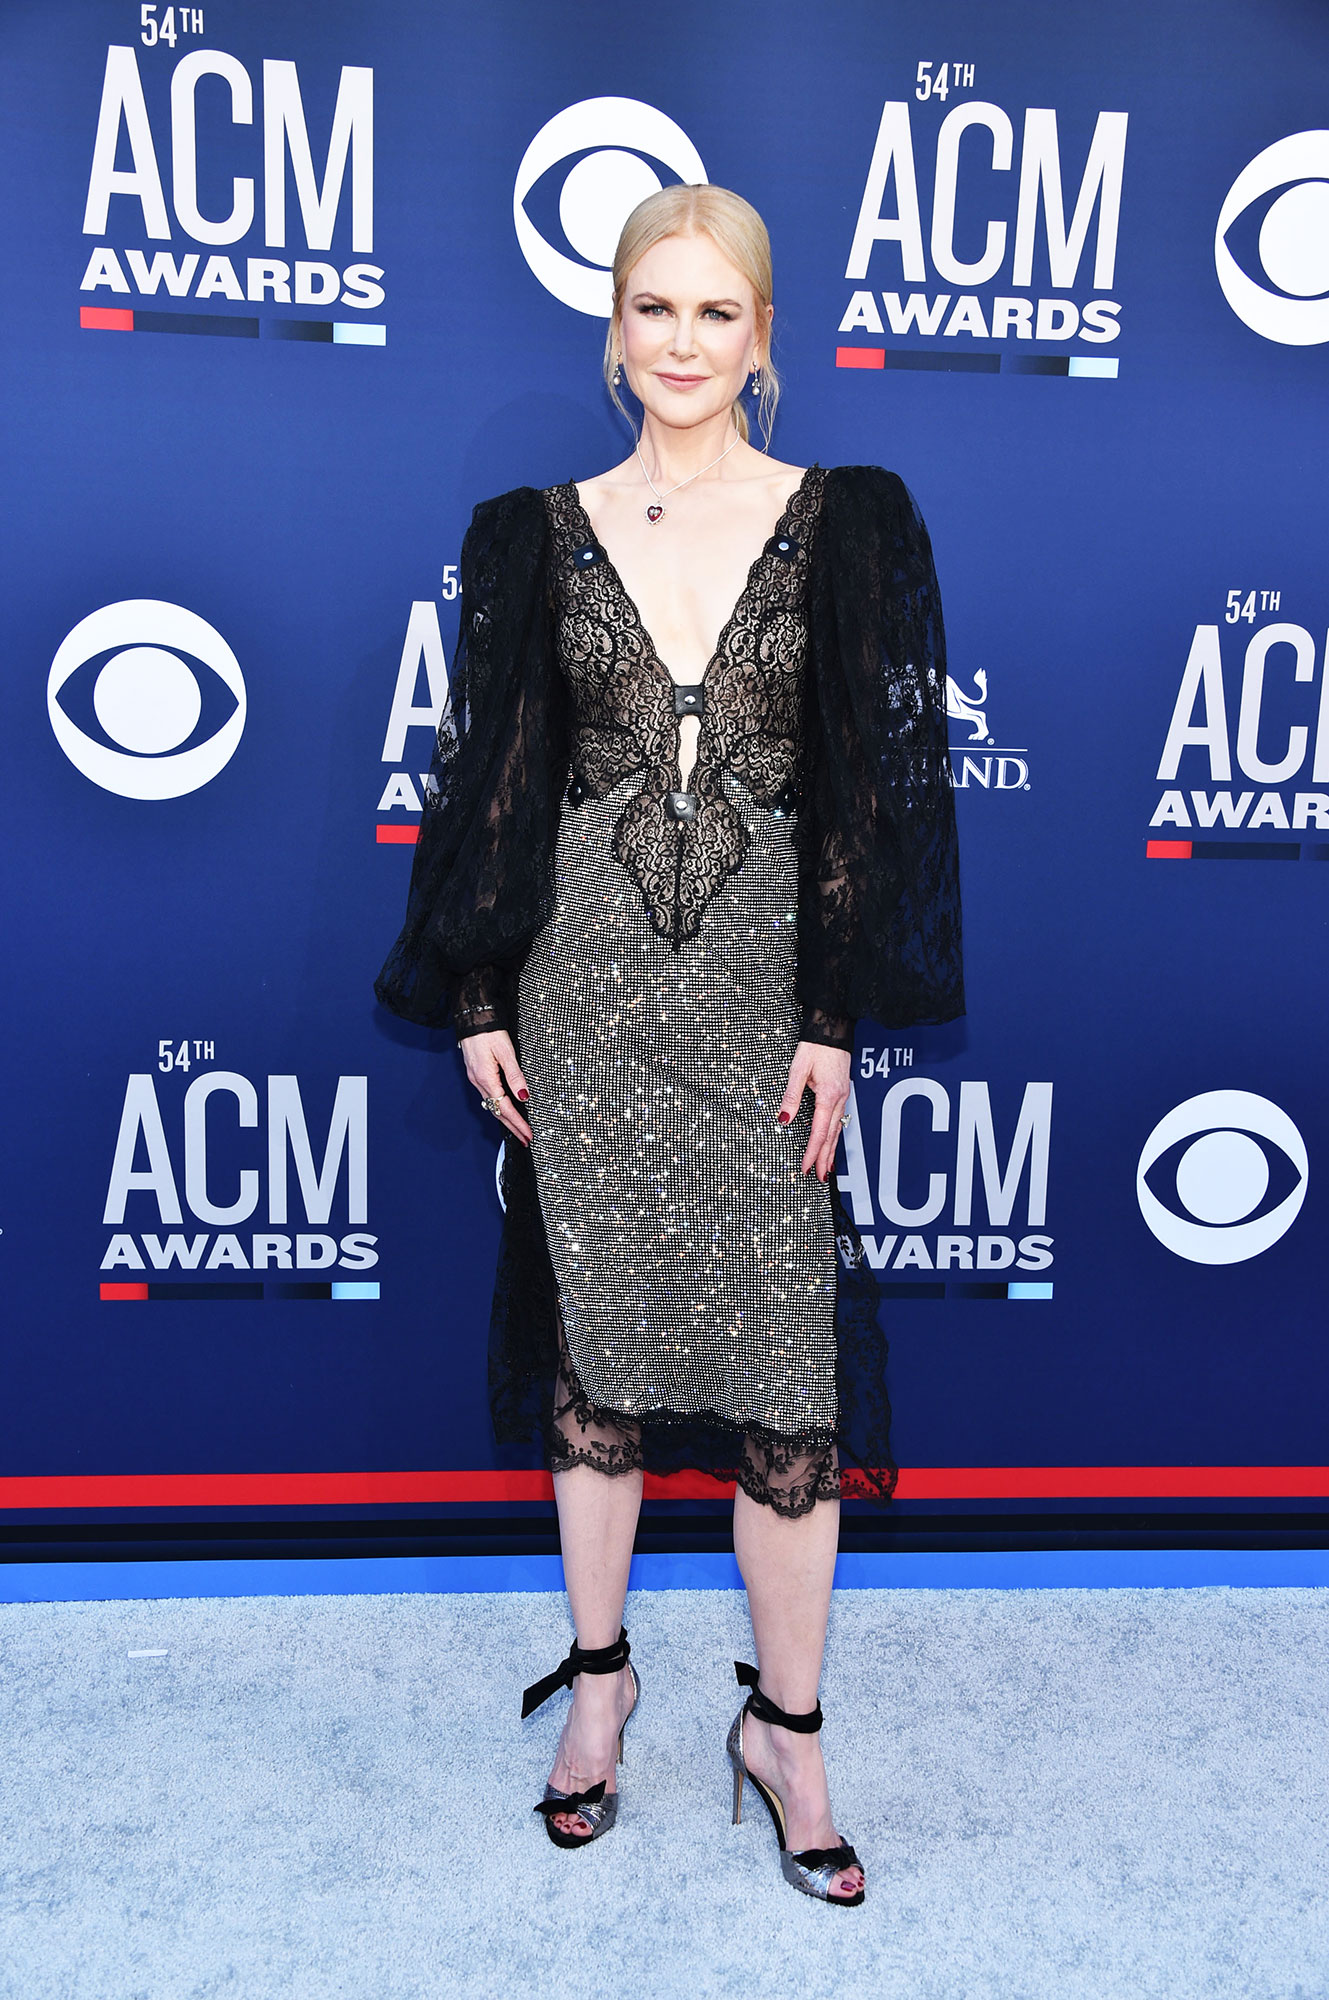 Nicole Kidman The Best Looks From the Country Music Awards Red Carpet - In a lacy look, the Big Little Lies actress proved herself a red carpet star in a black and silver mididress.